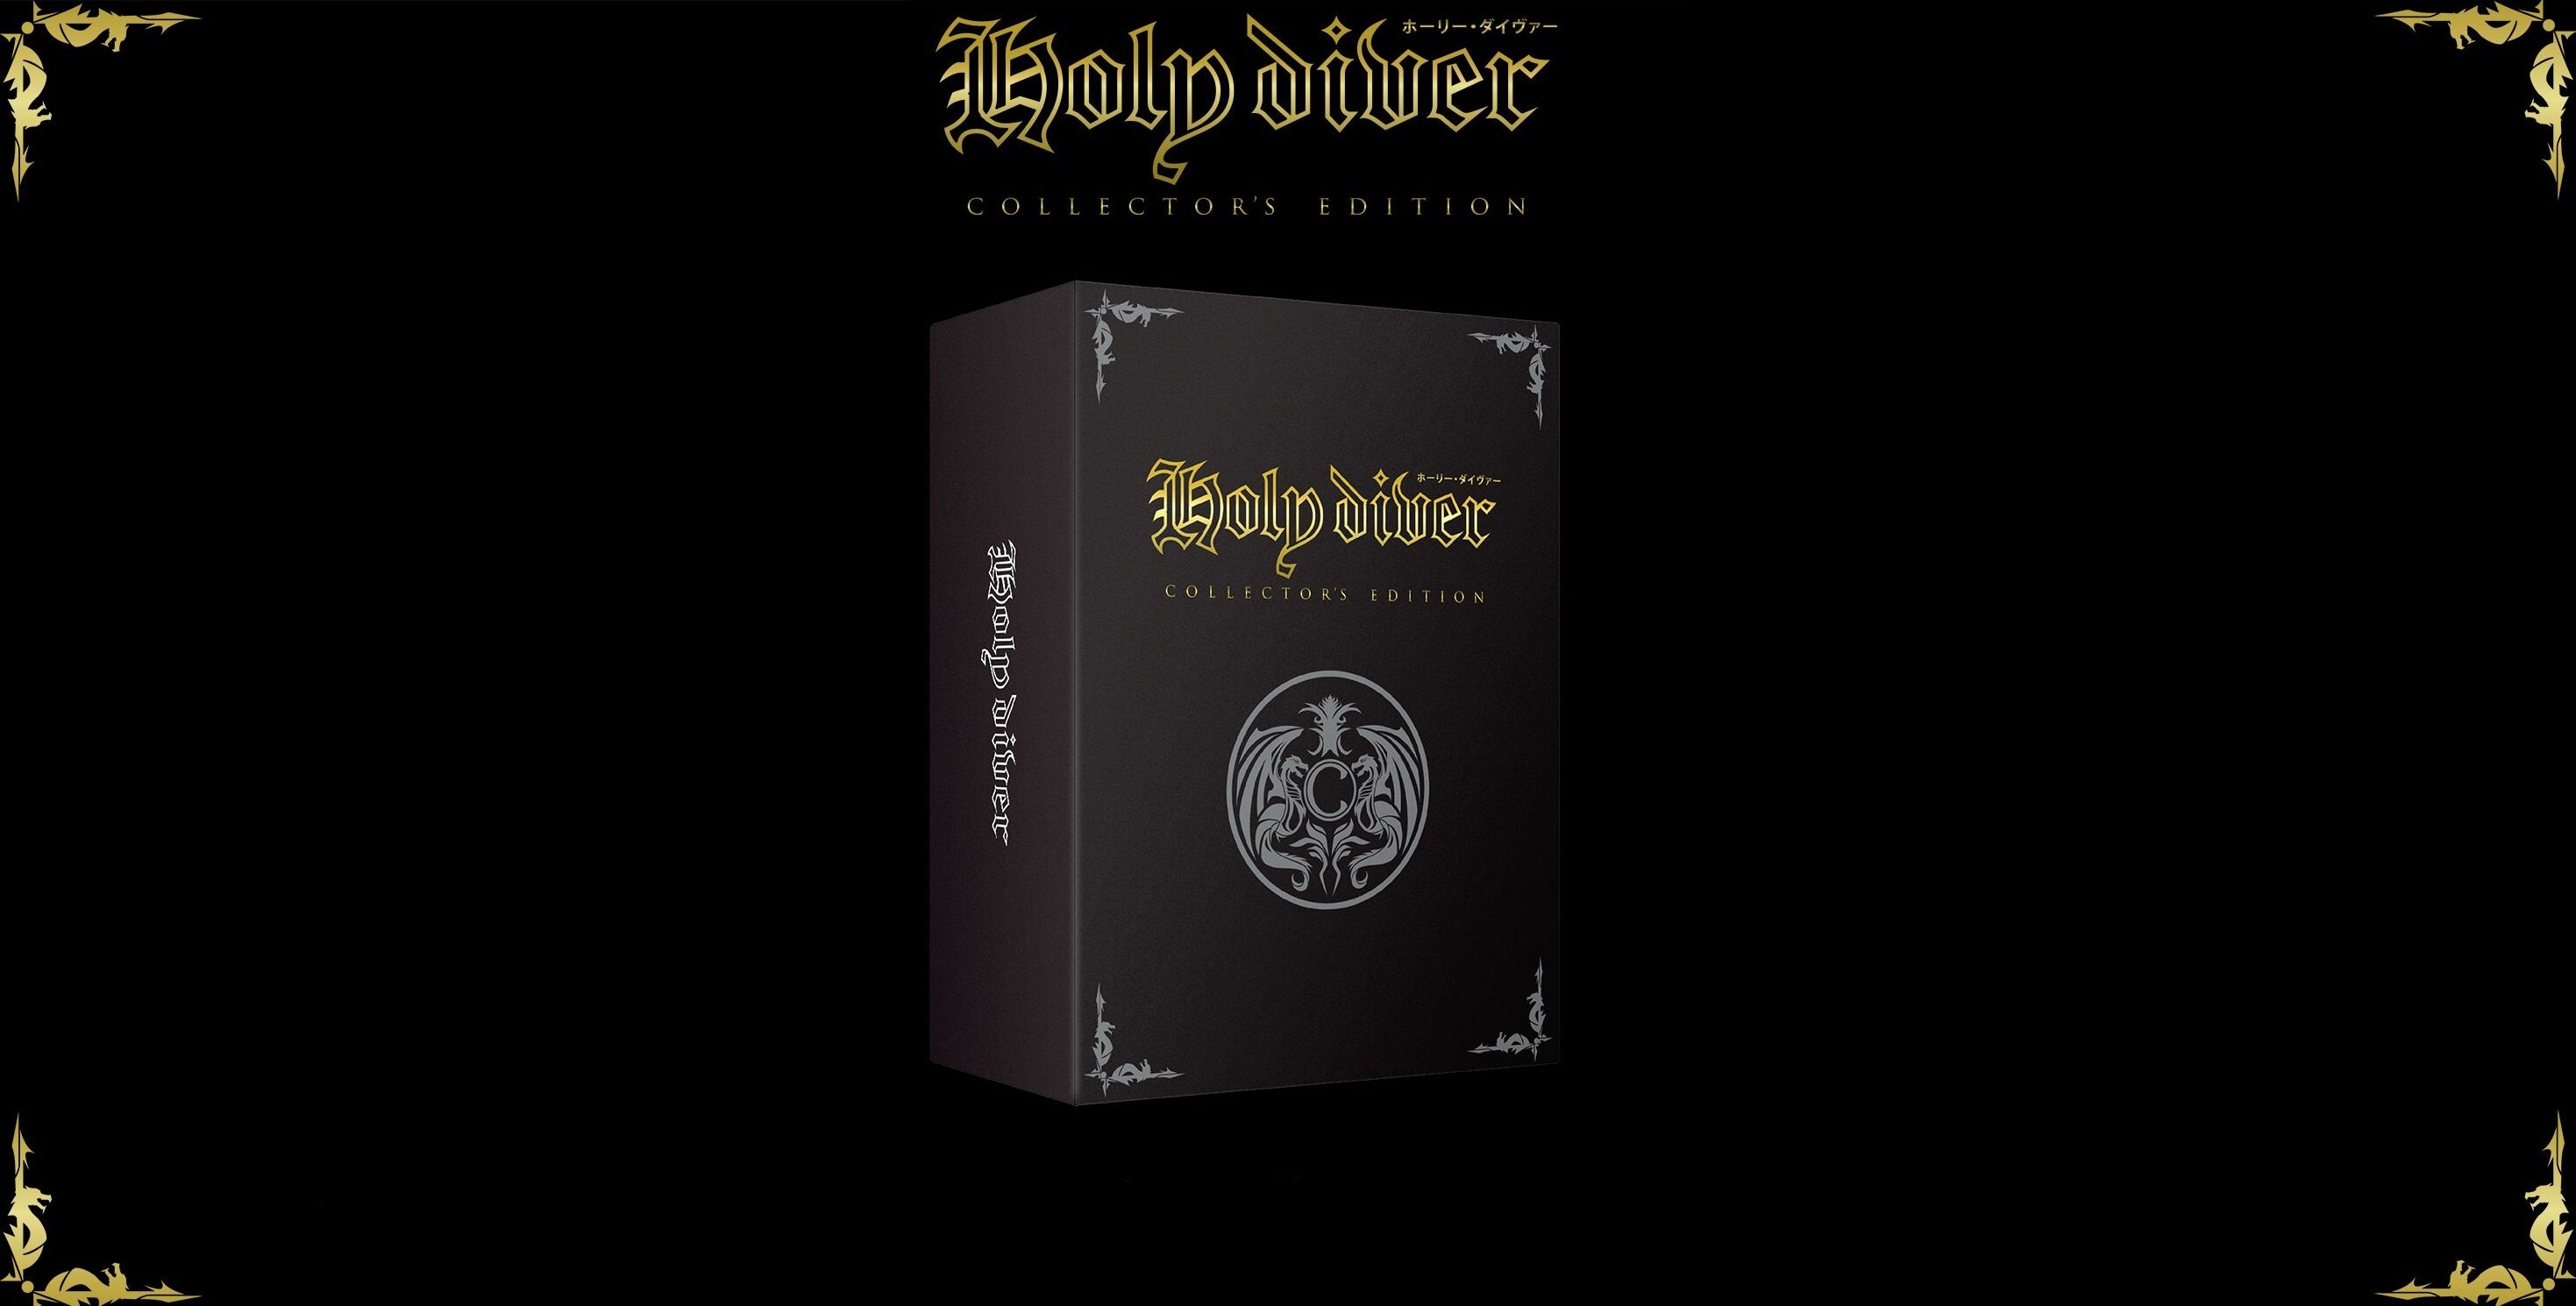 Review: Holy Diver Collector's Edition